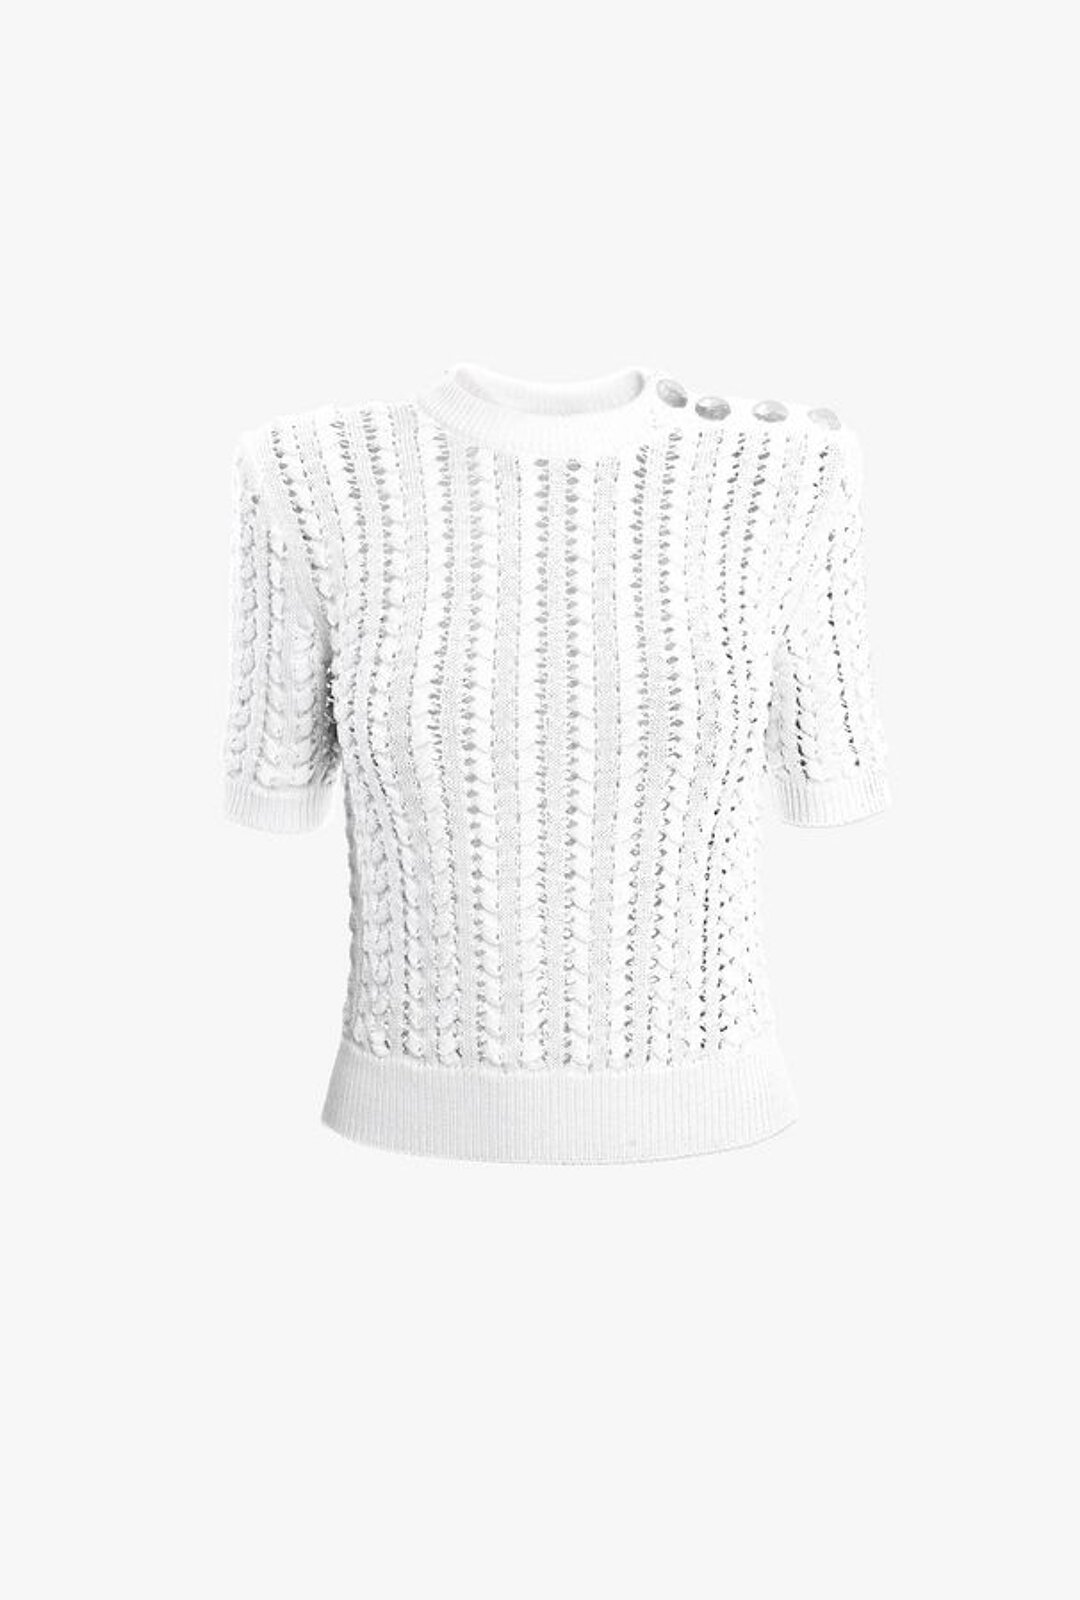 Top Bianco All'Uncinetto Con Bottoni Argentati - Balmain